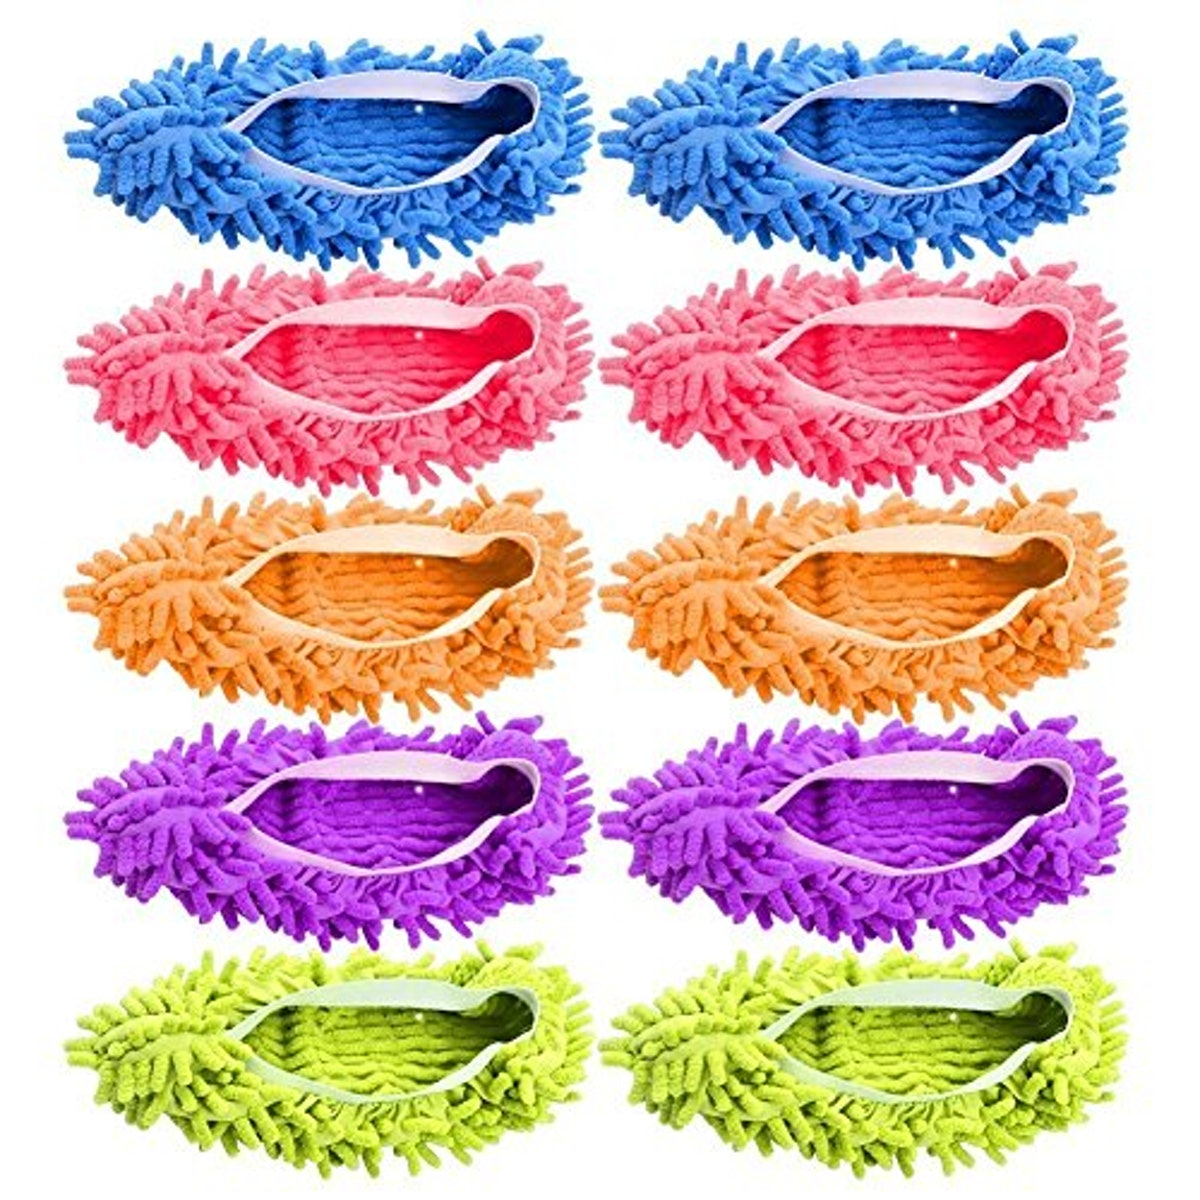 AIFUSI Mop Slippers Shoes Cover